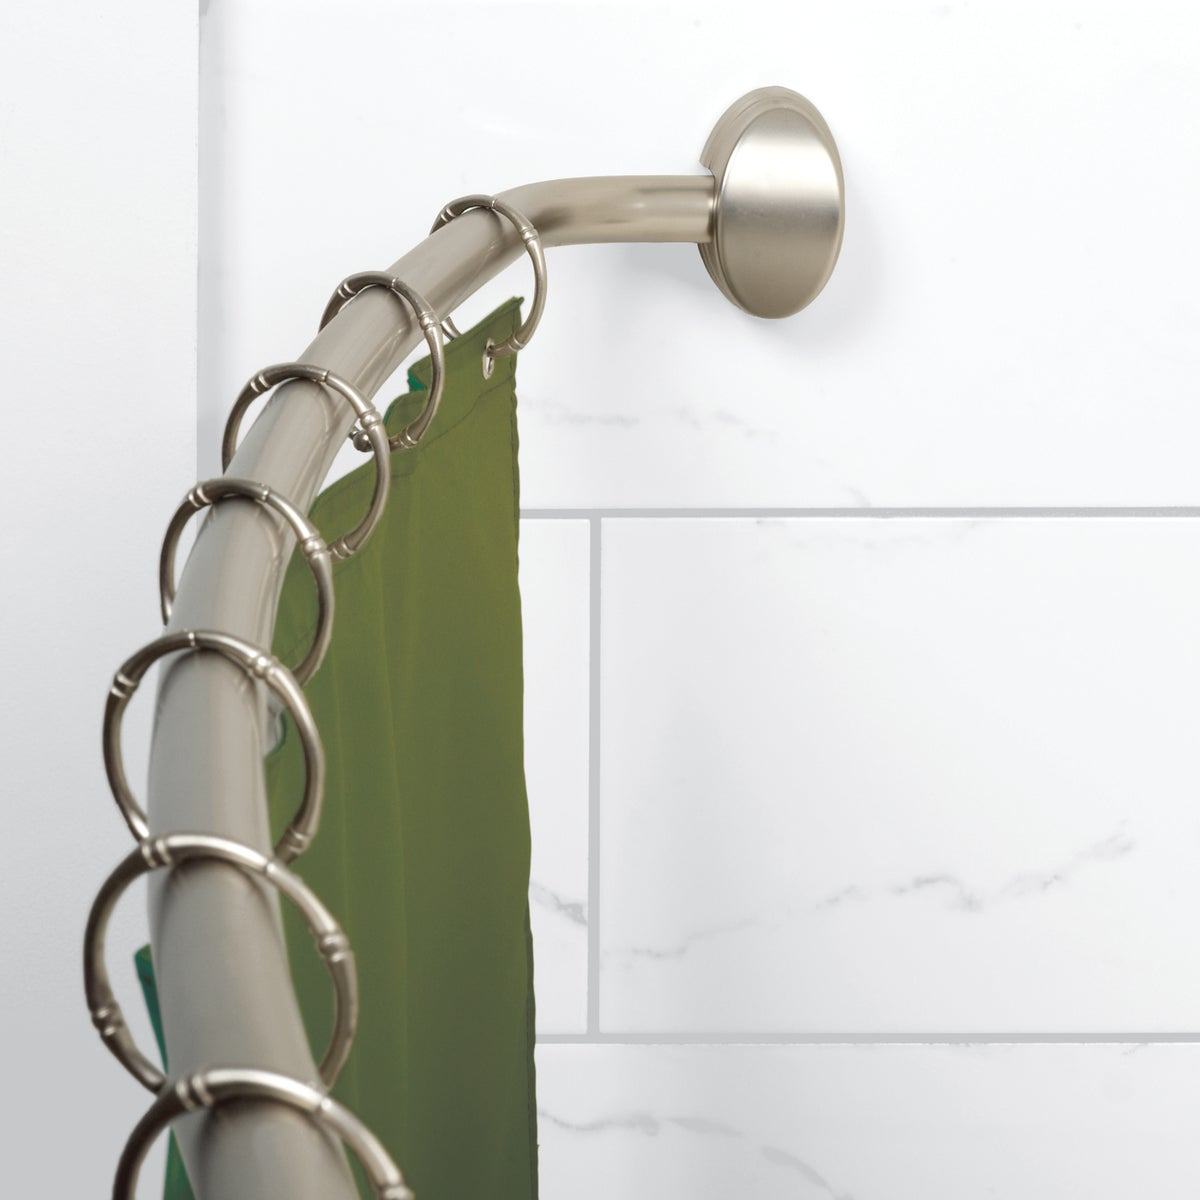 BN CURVED ADJ SHOWER ROD - 35601BN by Zenith Prod Corp